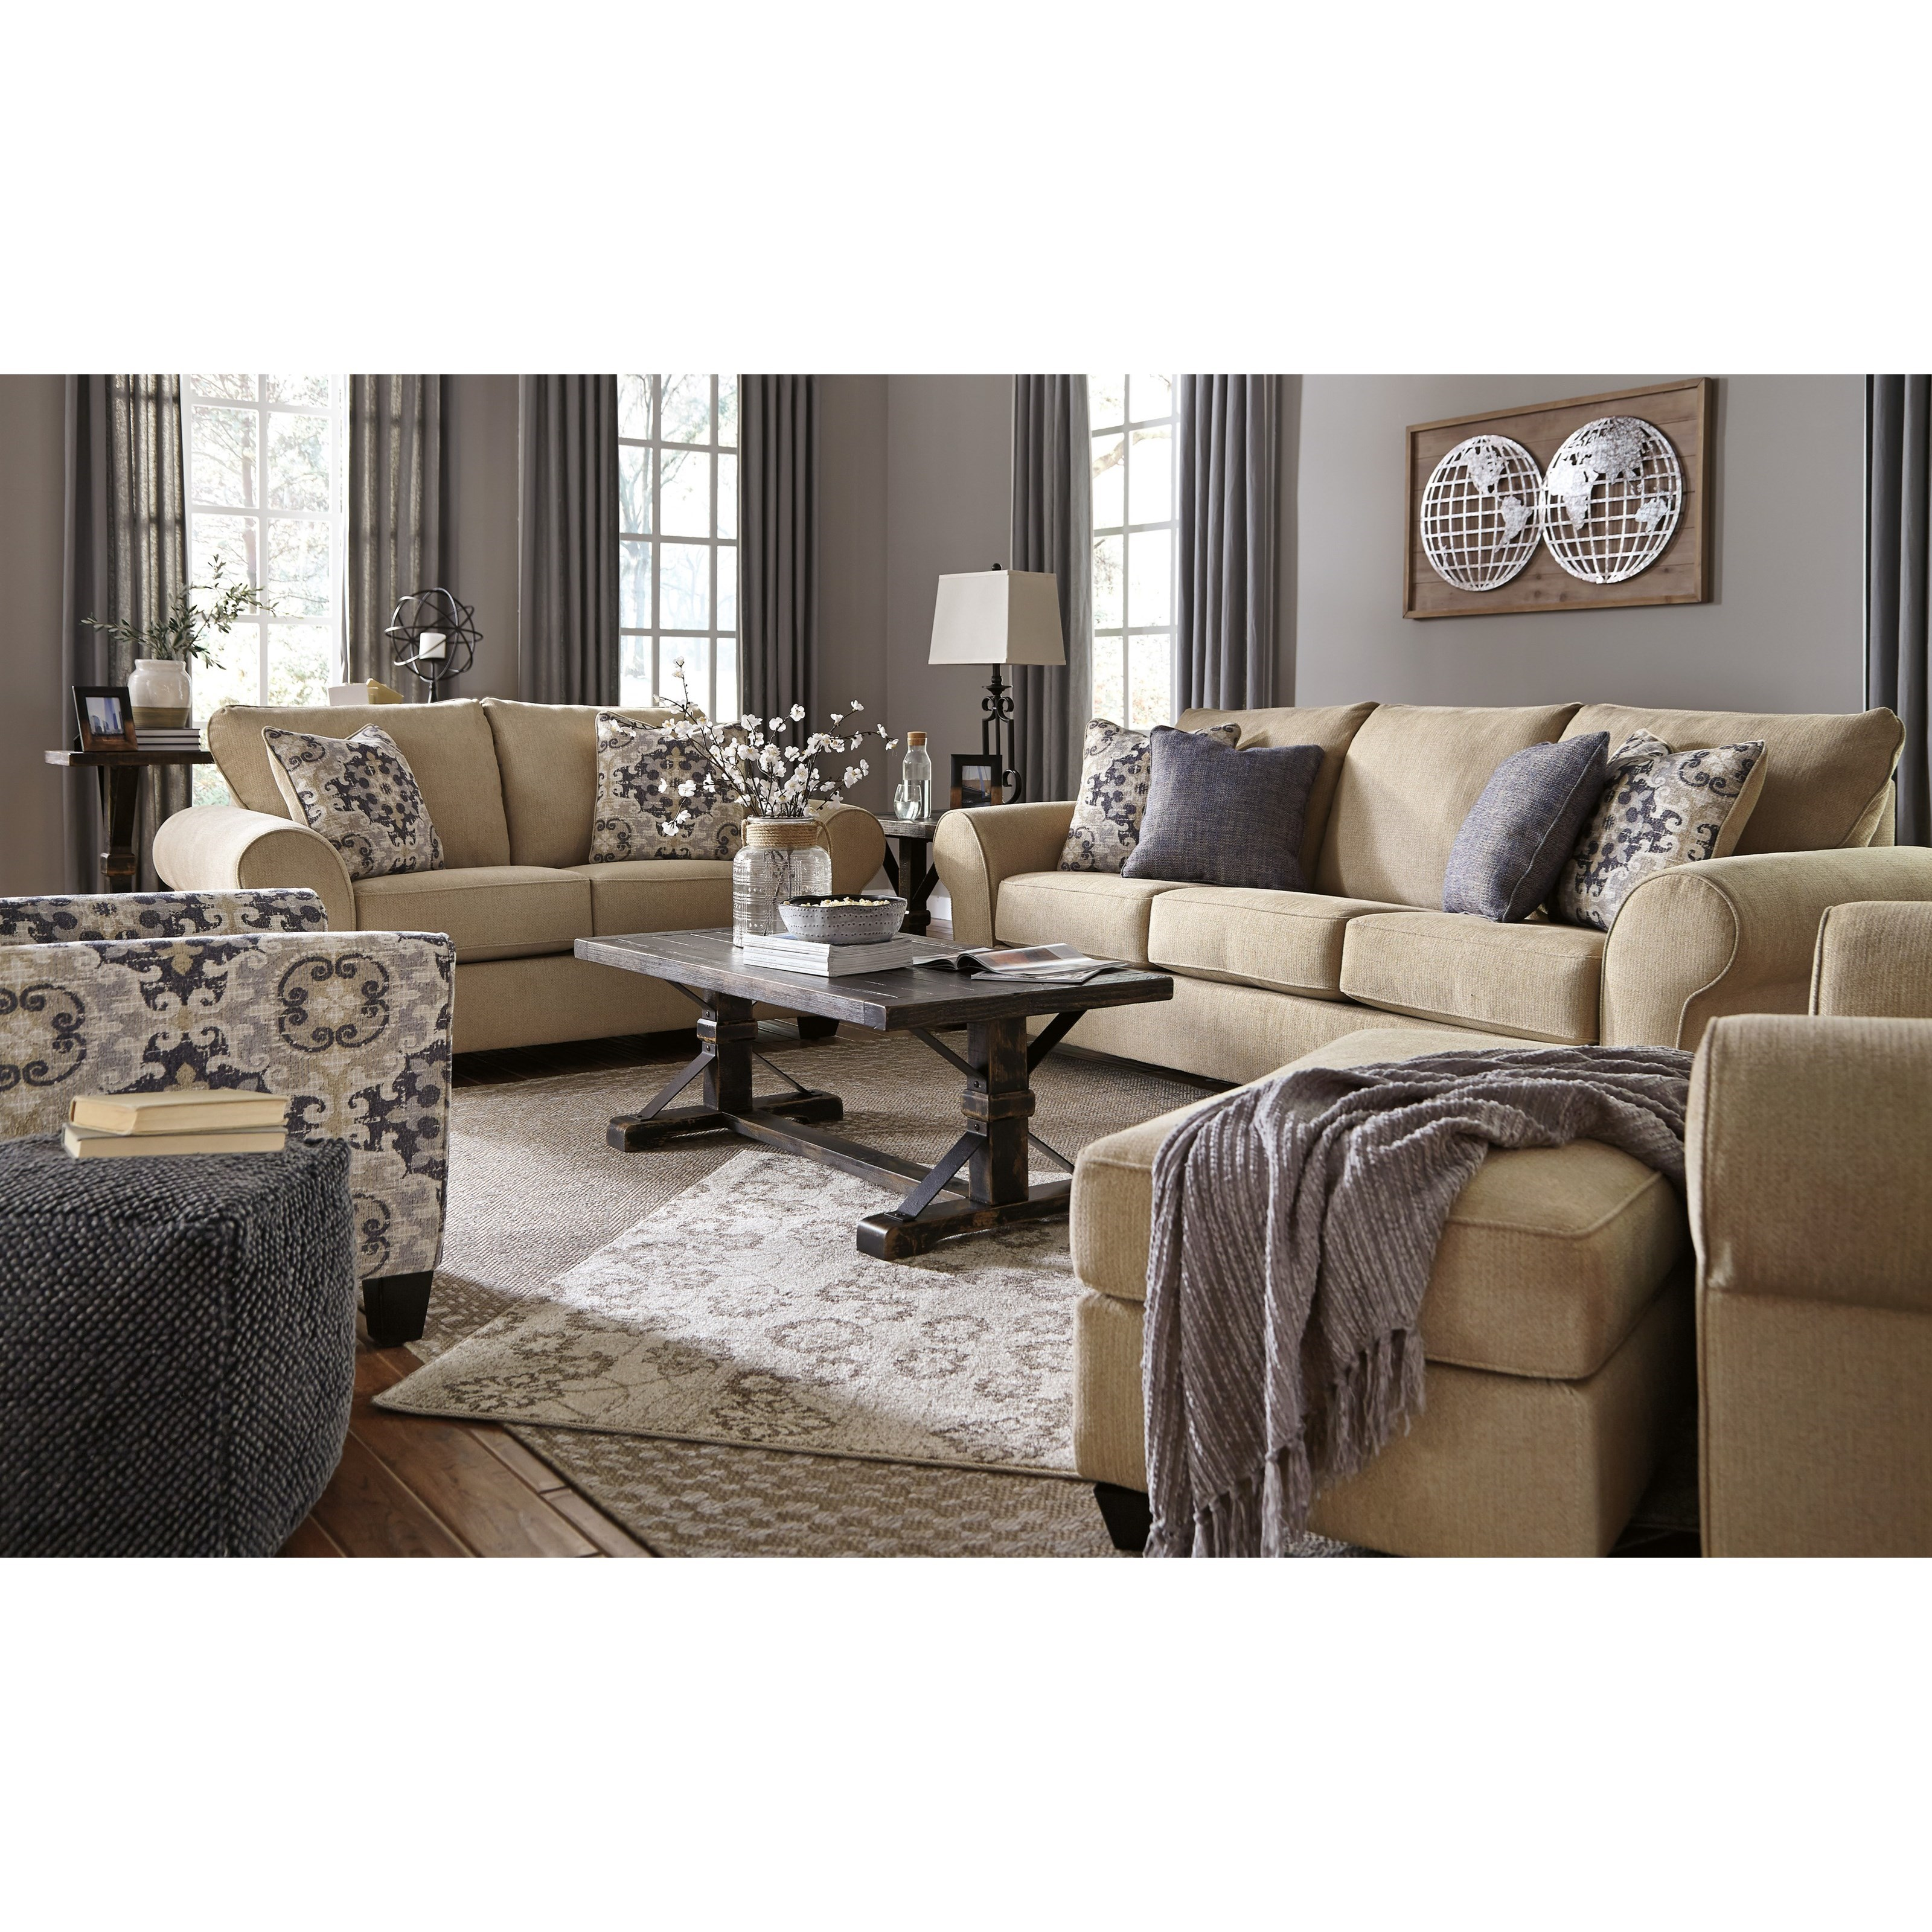 Ashley signature design denitasse stationary living room for Living room ideas ashley furniture